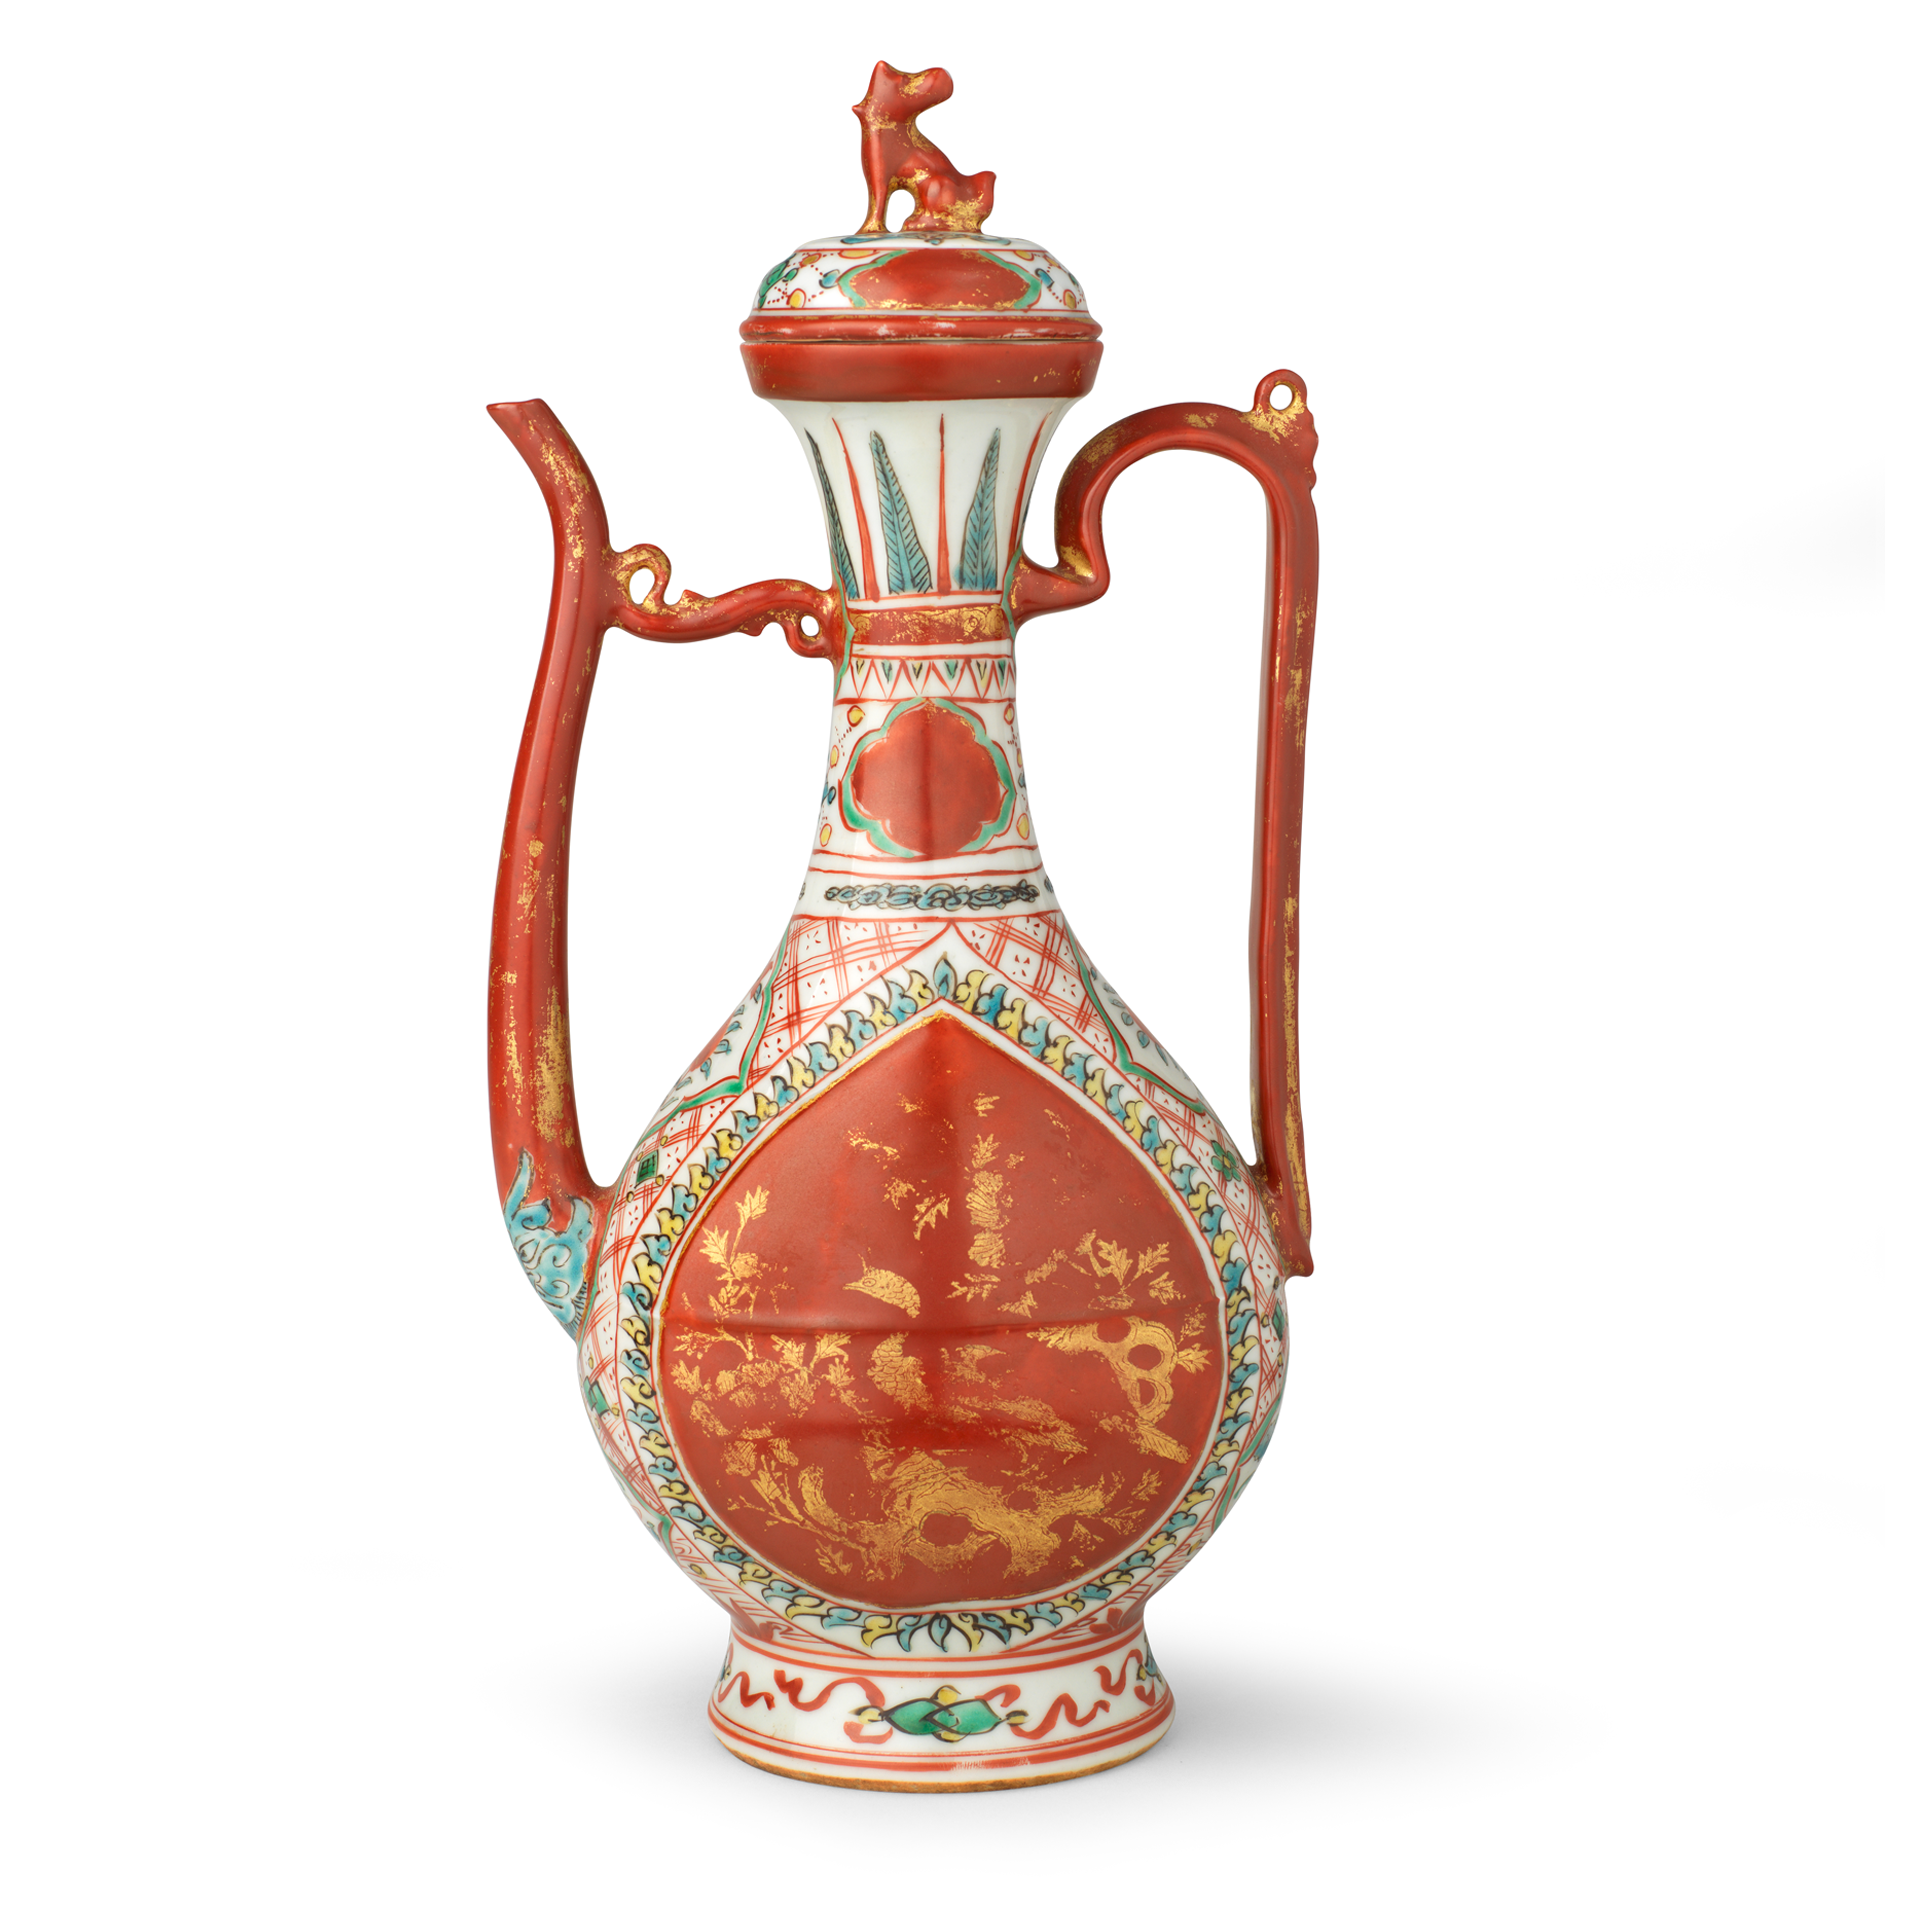 Ewer and Cover, Porcelain decorated in overglaze enamels and gold, 16th century